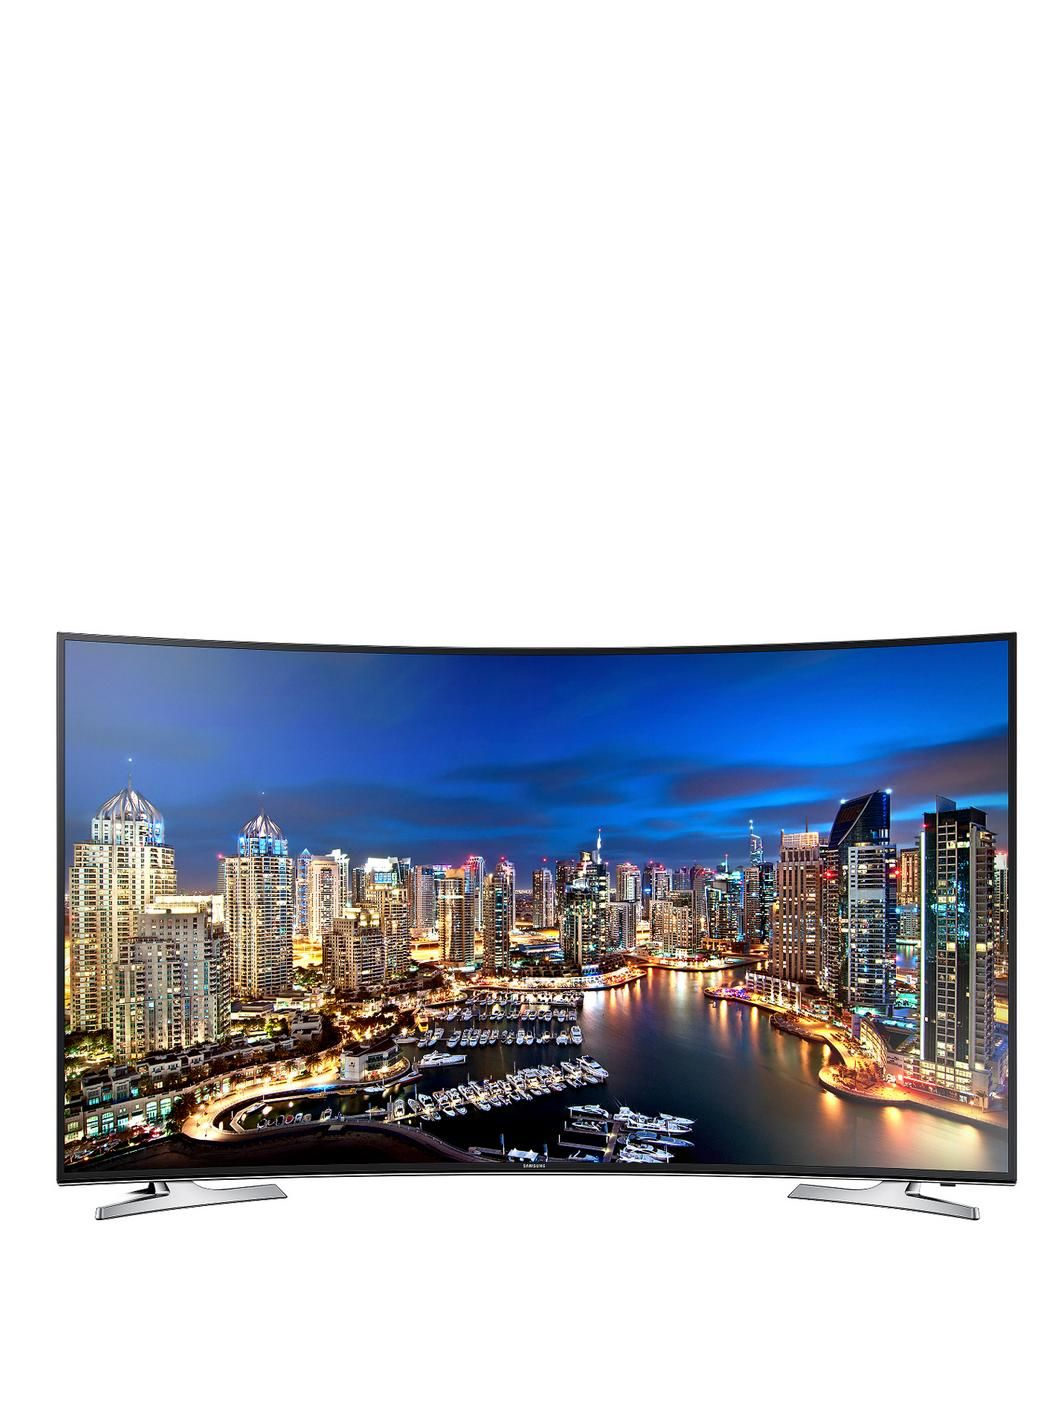 55 inch Series 7 HU7100 Curved Ultra HD Smart LED TV, http://www.very.co.uk/samsung-55-inch-series-7-hu7100-curved-ultra-hd-smart-led-tv/1432803693.prd